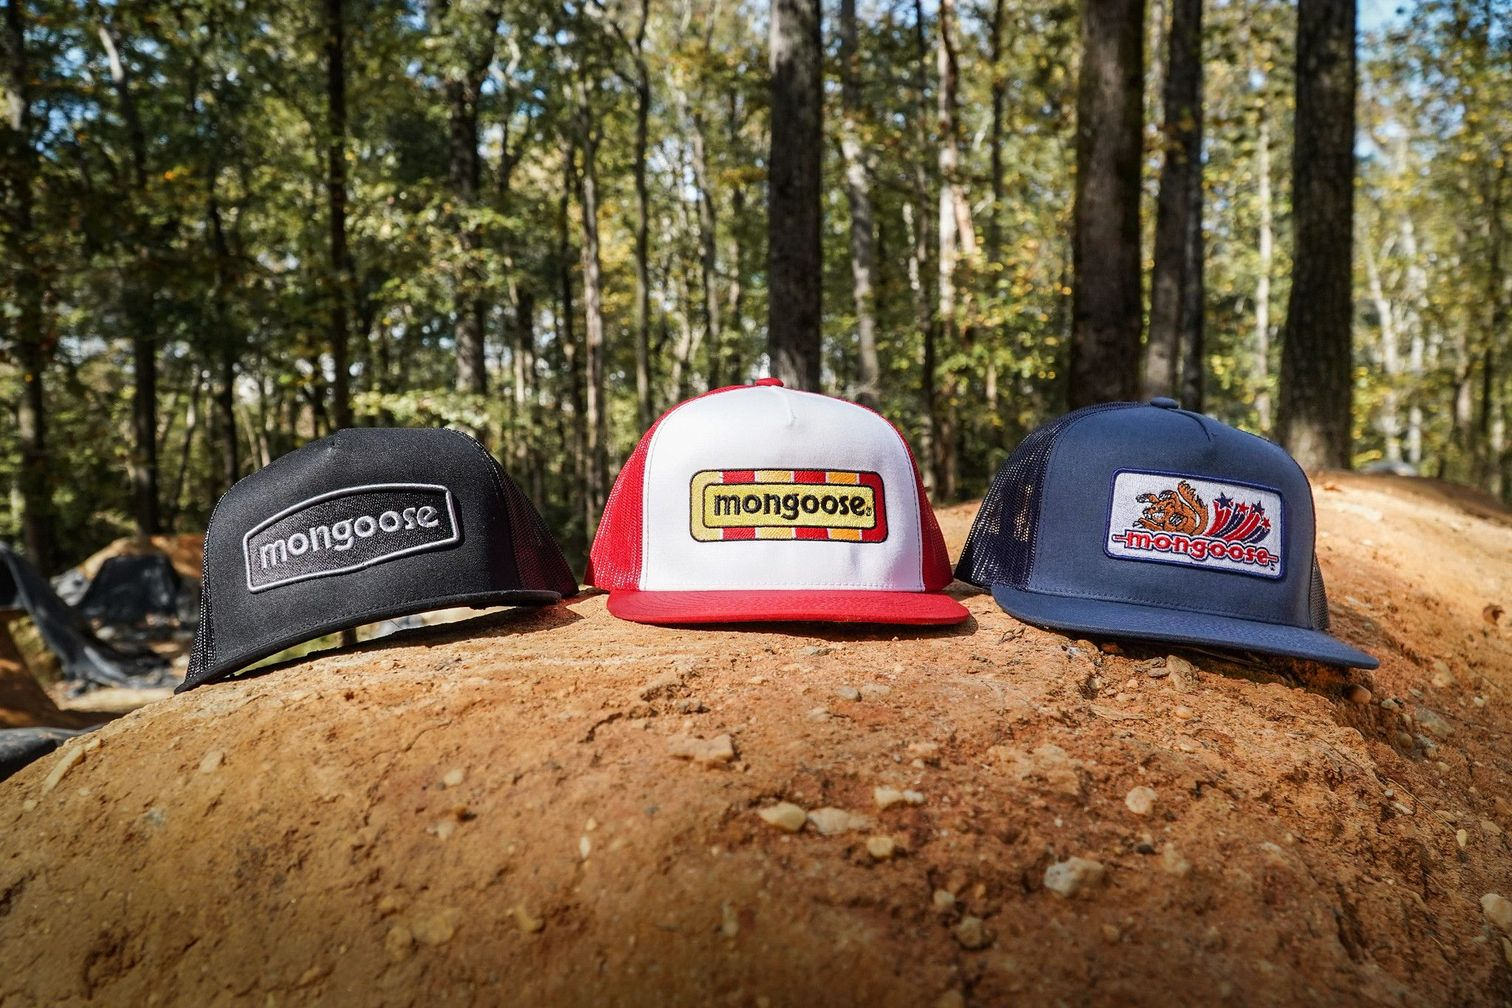 mongoose hats